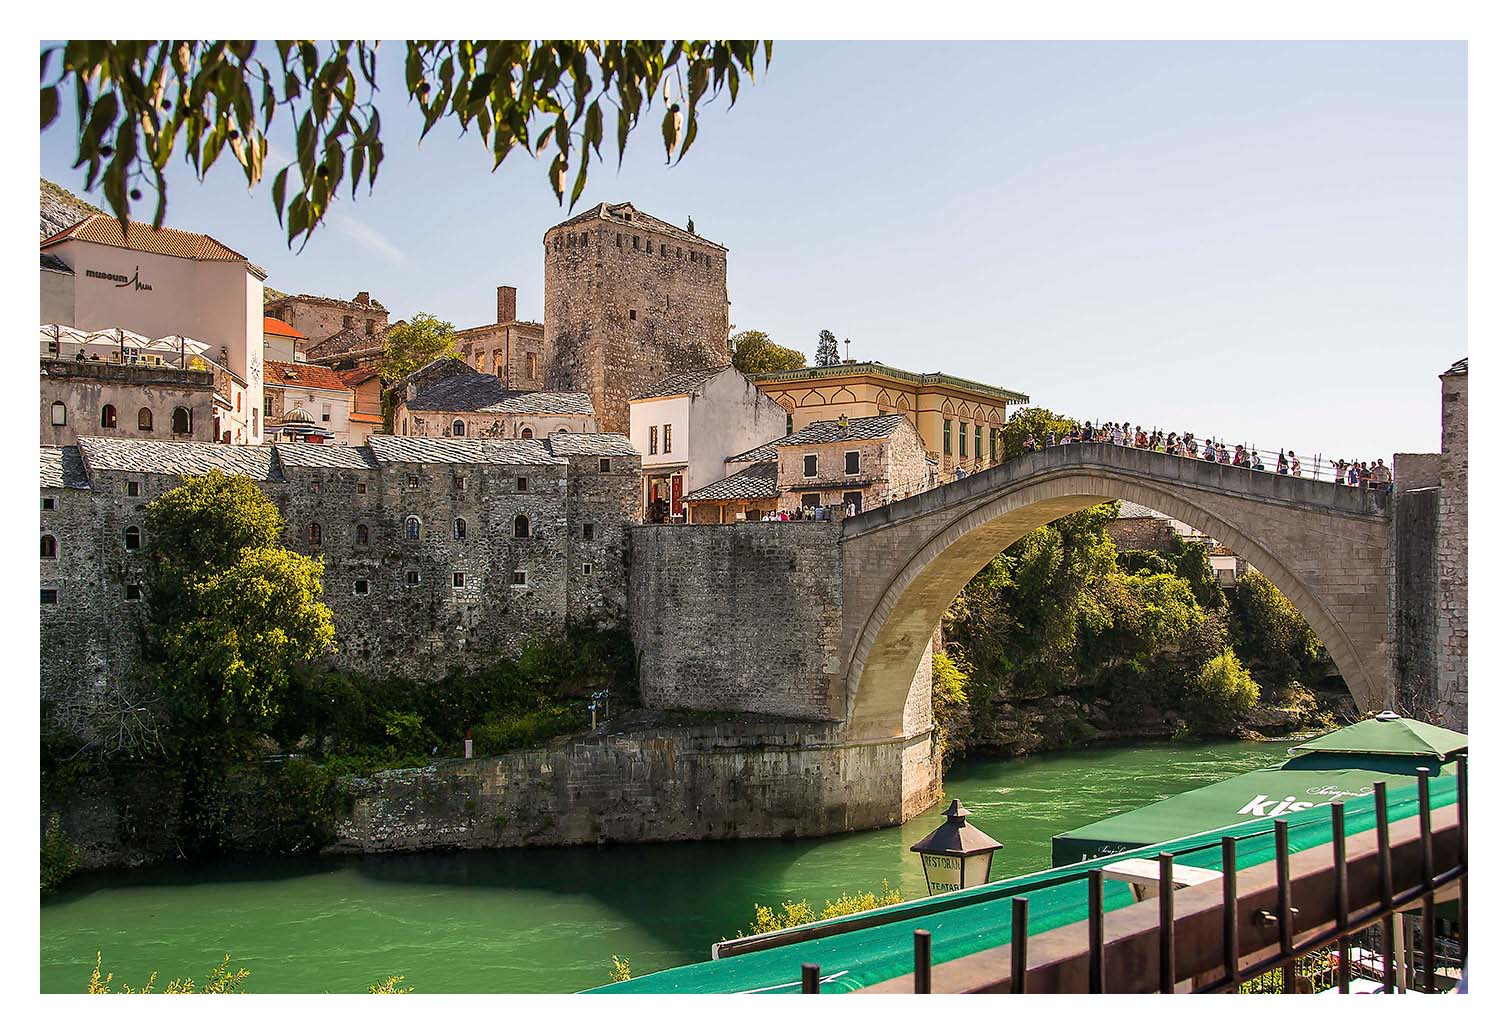 The charming old city of Mostar with its narrow cobbled streets and featuring the famous old bridge, built in the 16th century by the Ottomans, Destroyed in the war of 1993 and rebuilt in 2003-2004 and had a grand opening in July 2004.?